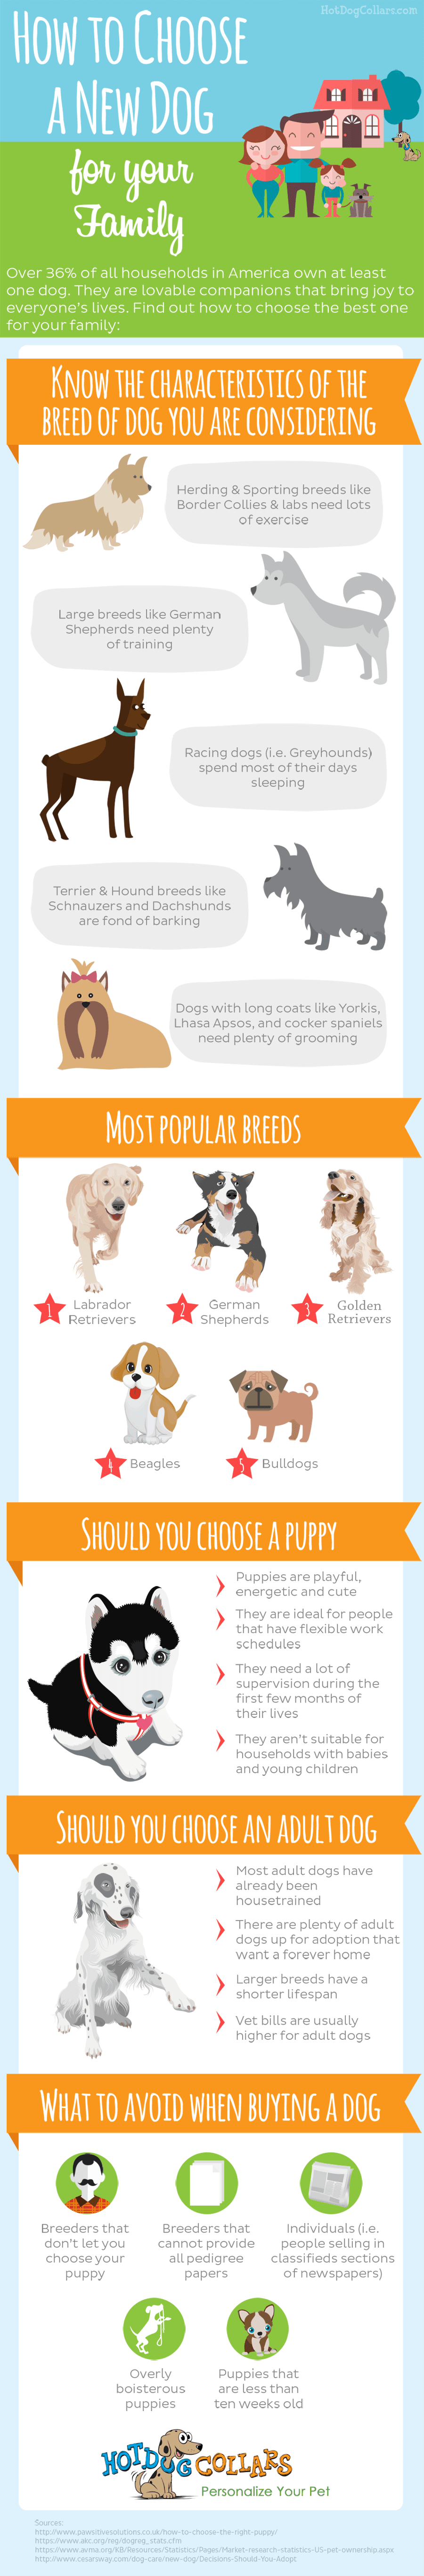 infographic on how to choose a new dog for your family